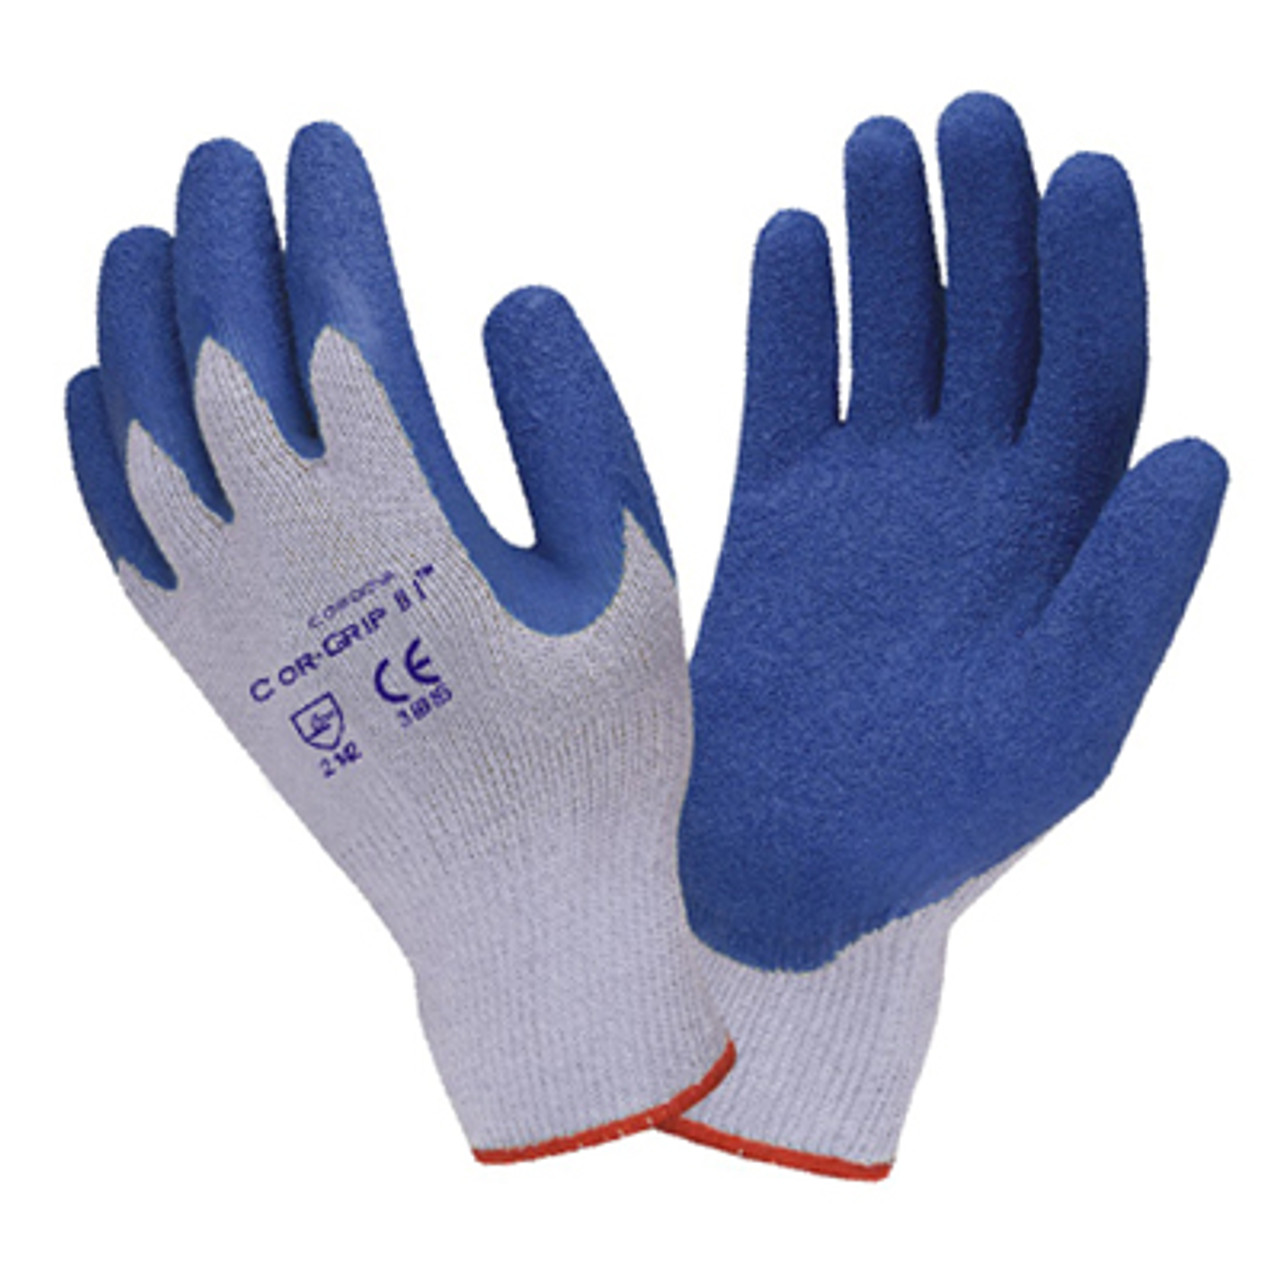 3898: Economy Gray Shell/Blue Crinkle Latex Coating String Knit Gloves - 12 Pack